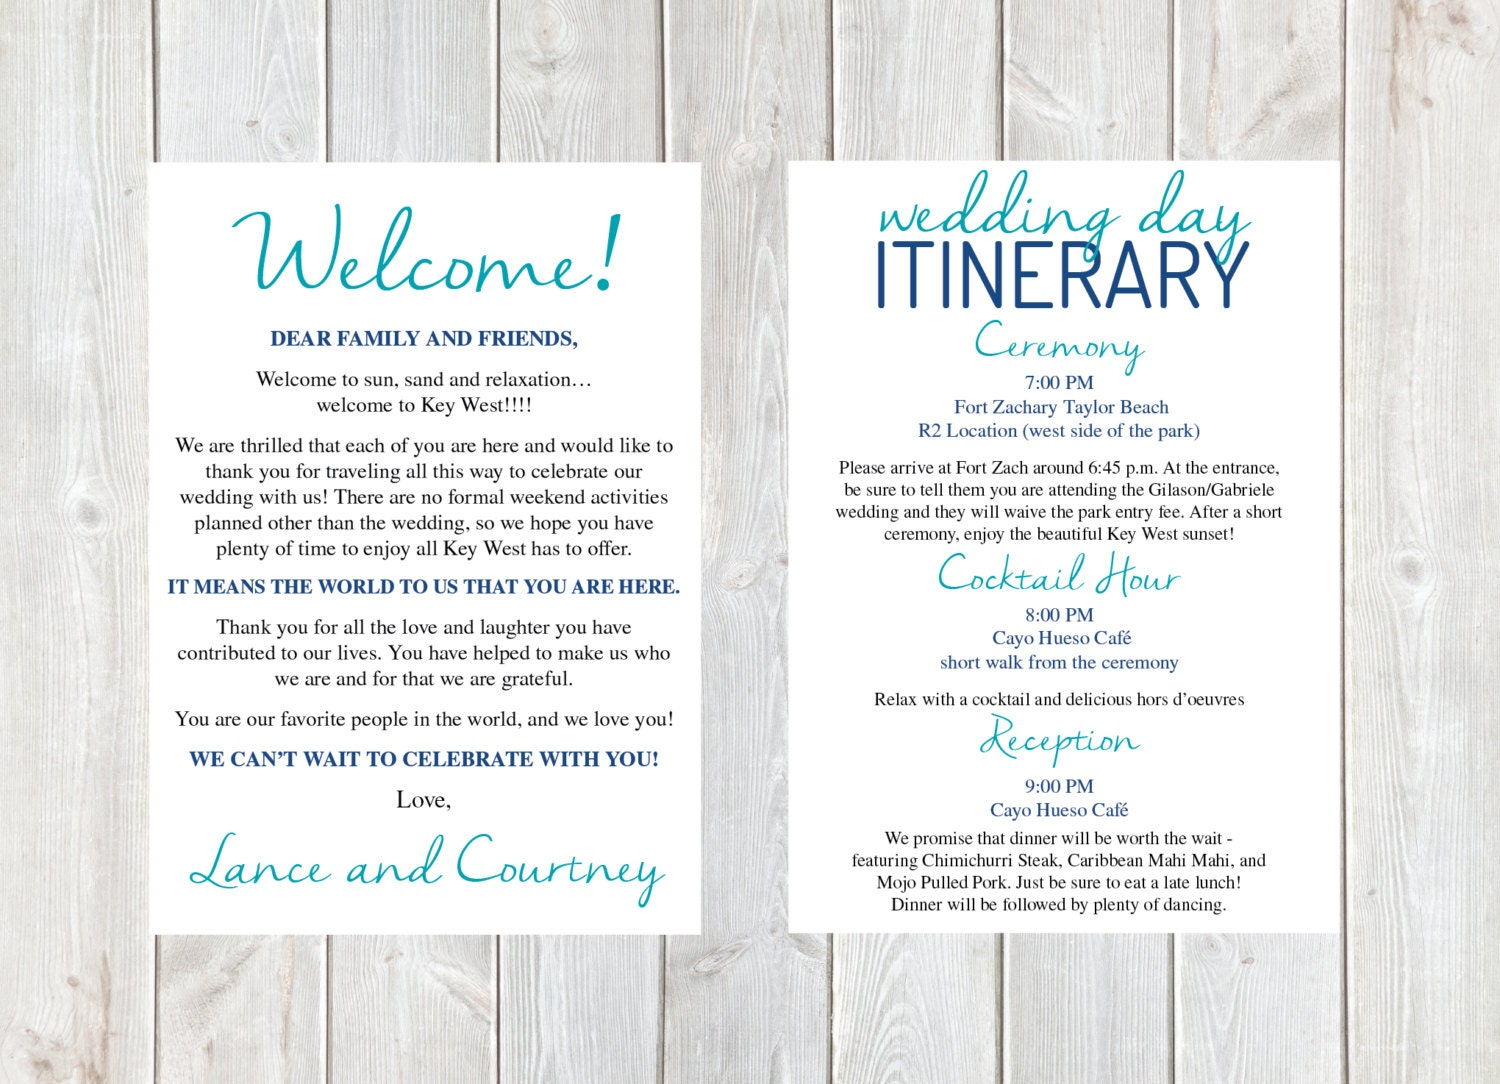 Welcome letter wedding welcome letter wedding itinerary zoom spiritdancerdesigns Image collections